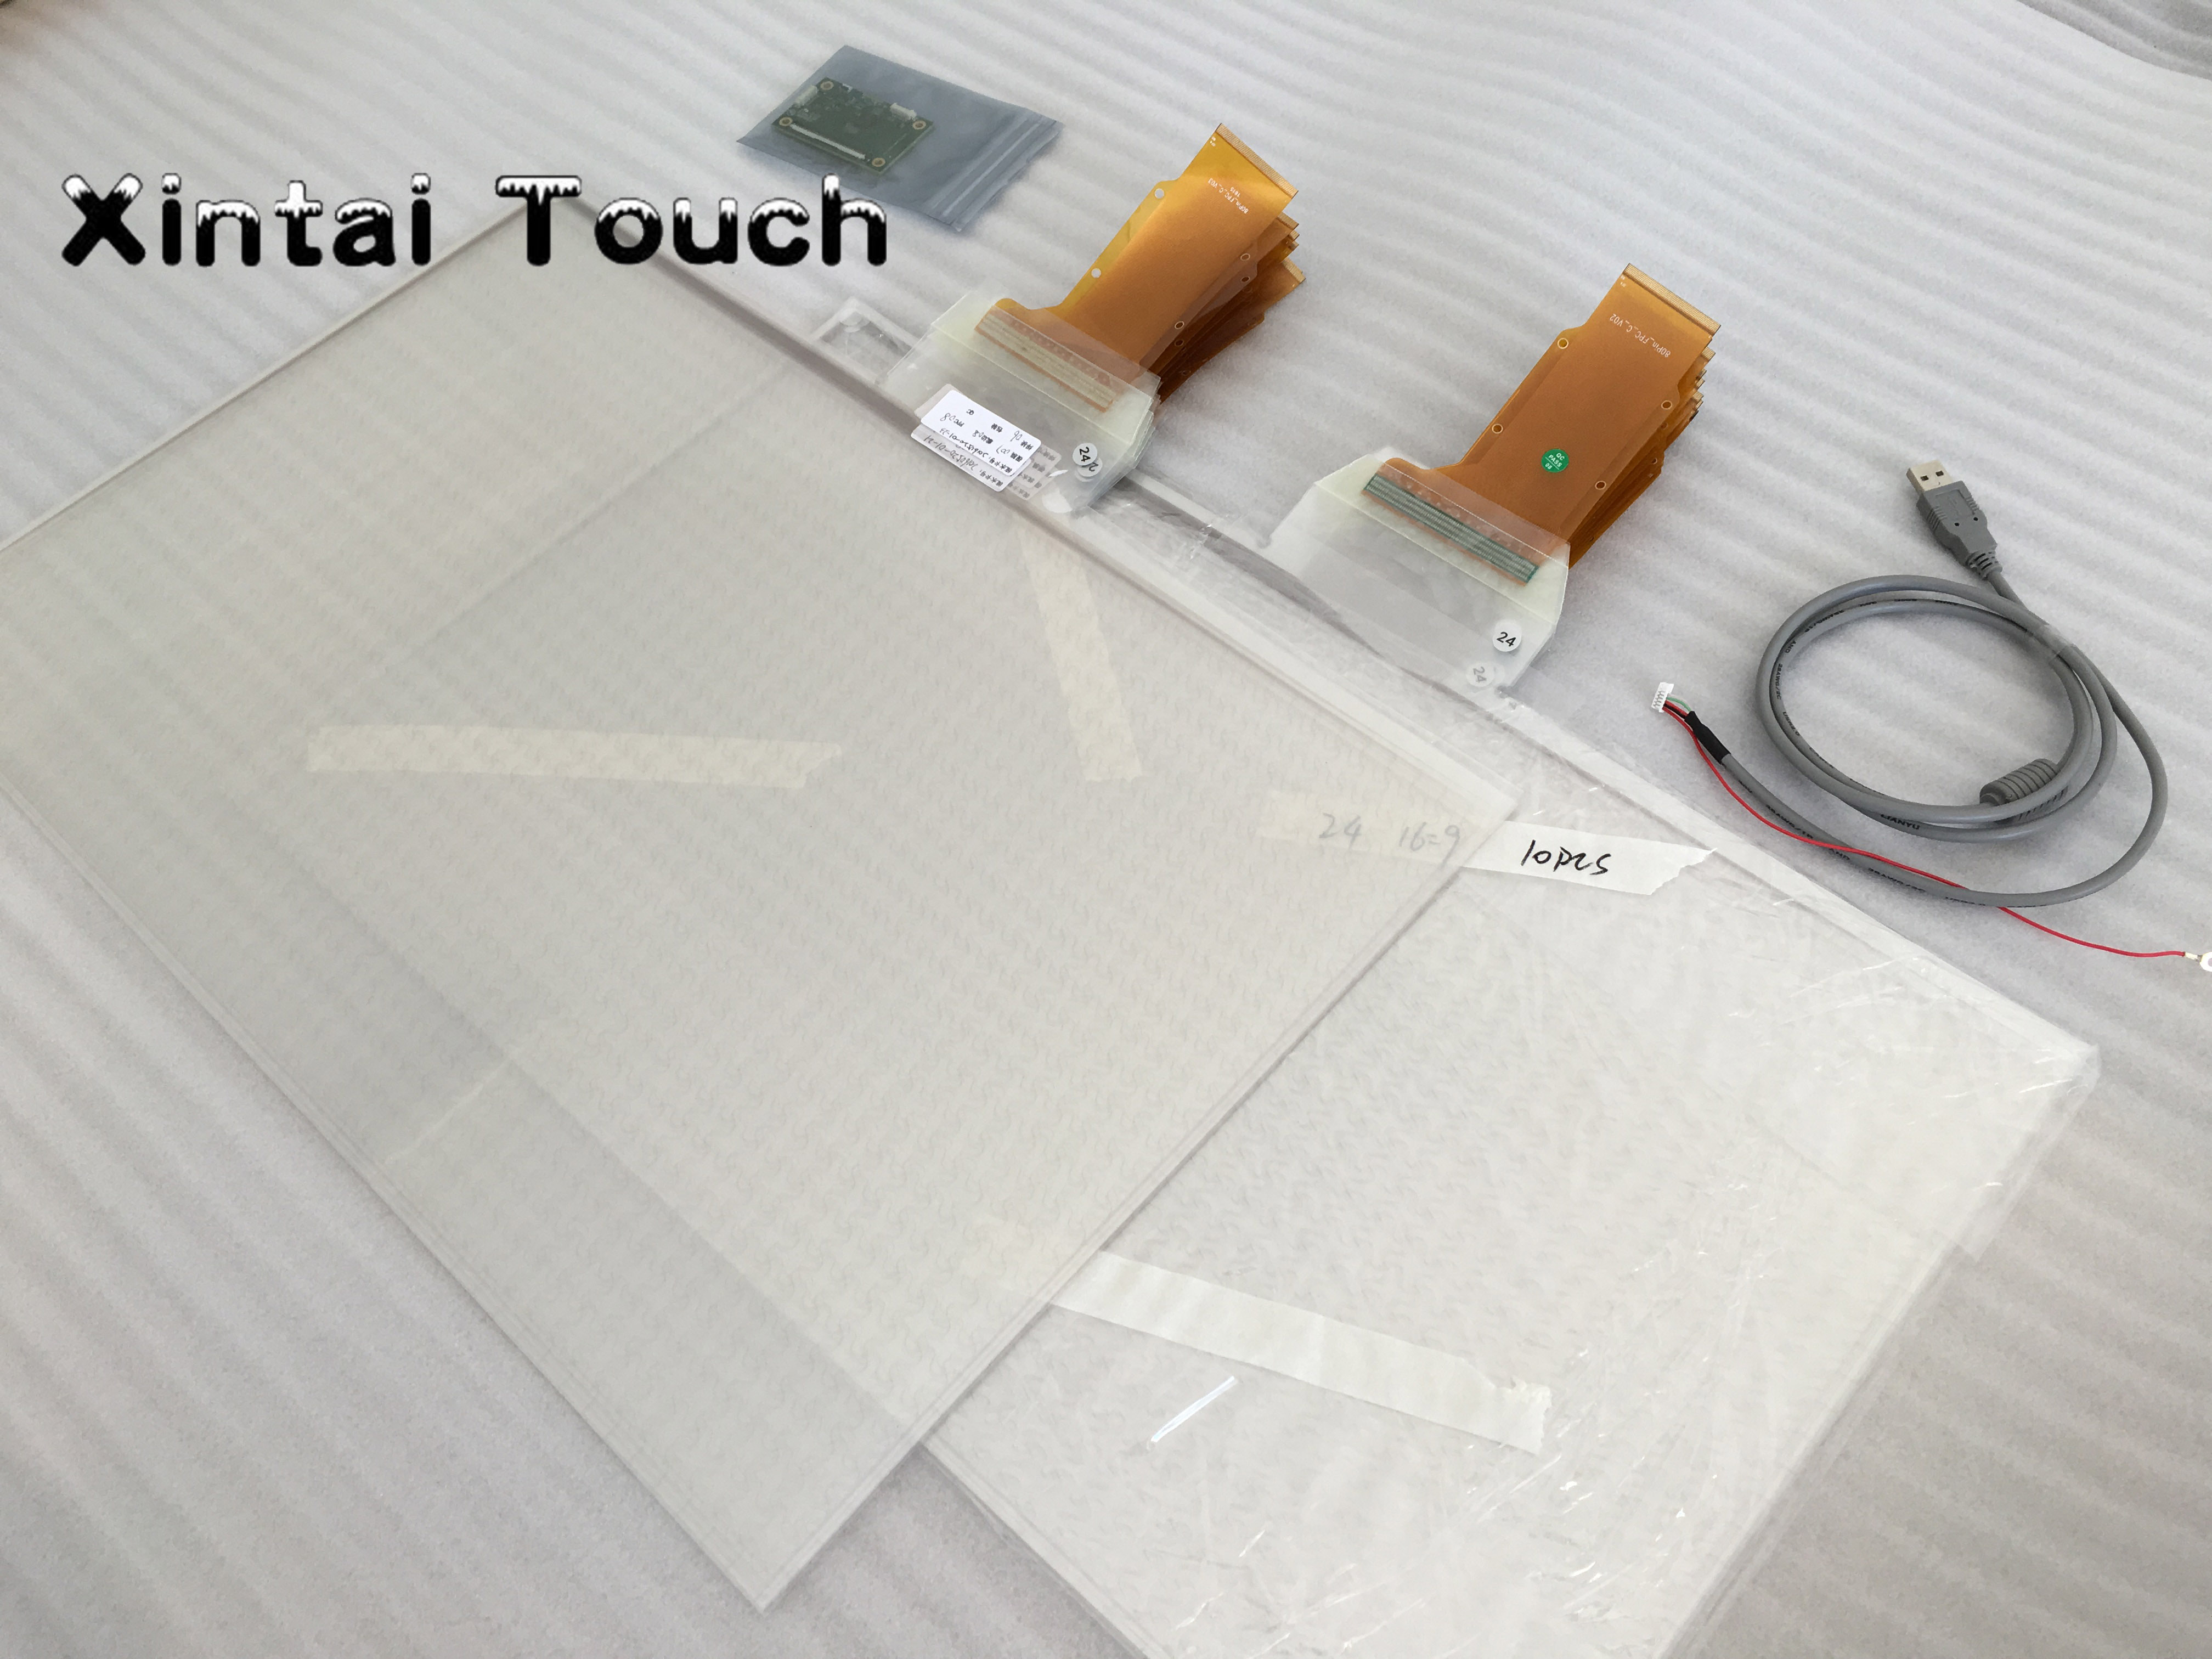 22 inch Clear touch foil, 10 points interactive touch foil, USB touch film for glass